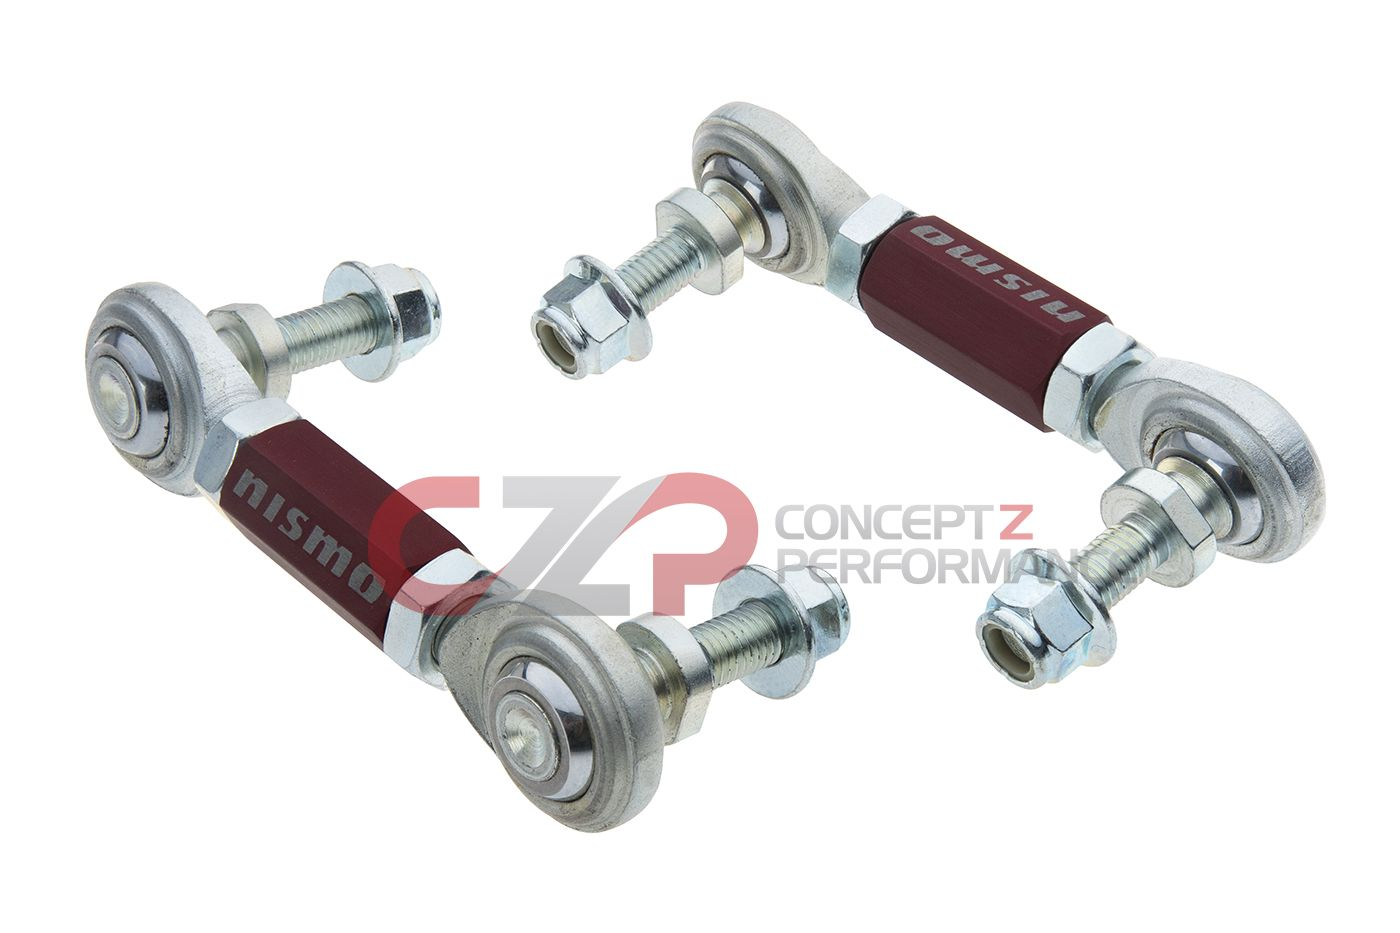 Nismo Rear Sway Bar Endlink Set - Nissan 350Z 370Z / Infiniti G35 G37